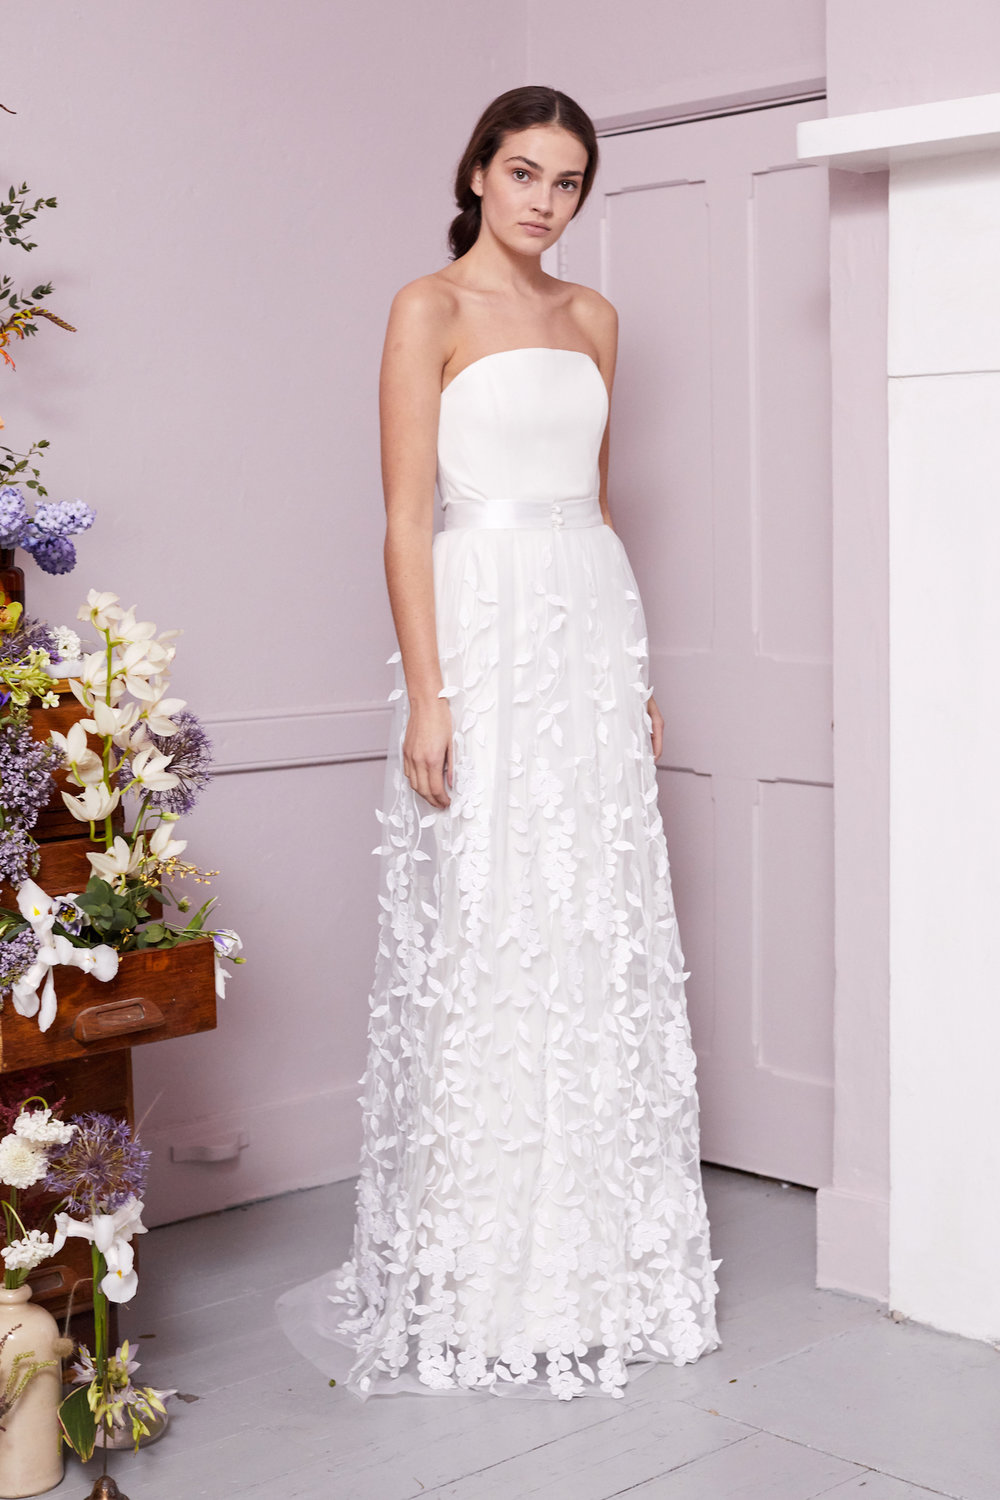 BEALE SKIRT & OLIVER DRESS | WEDDING DRESS BY HALFPENNY LONDON